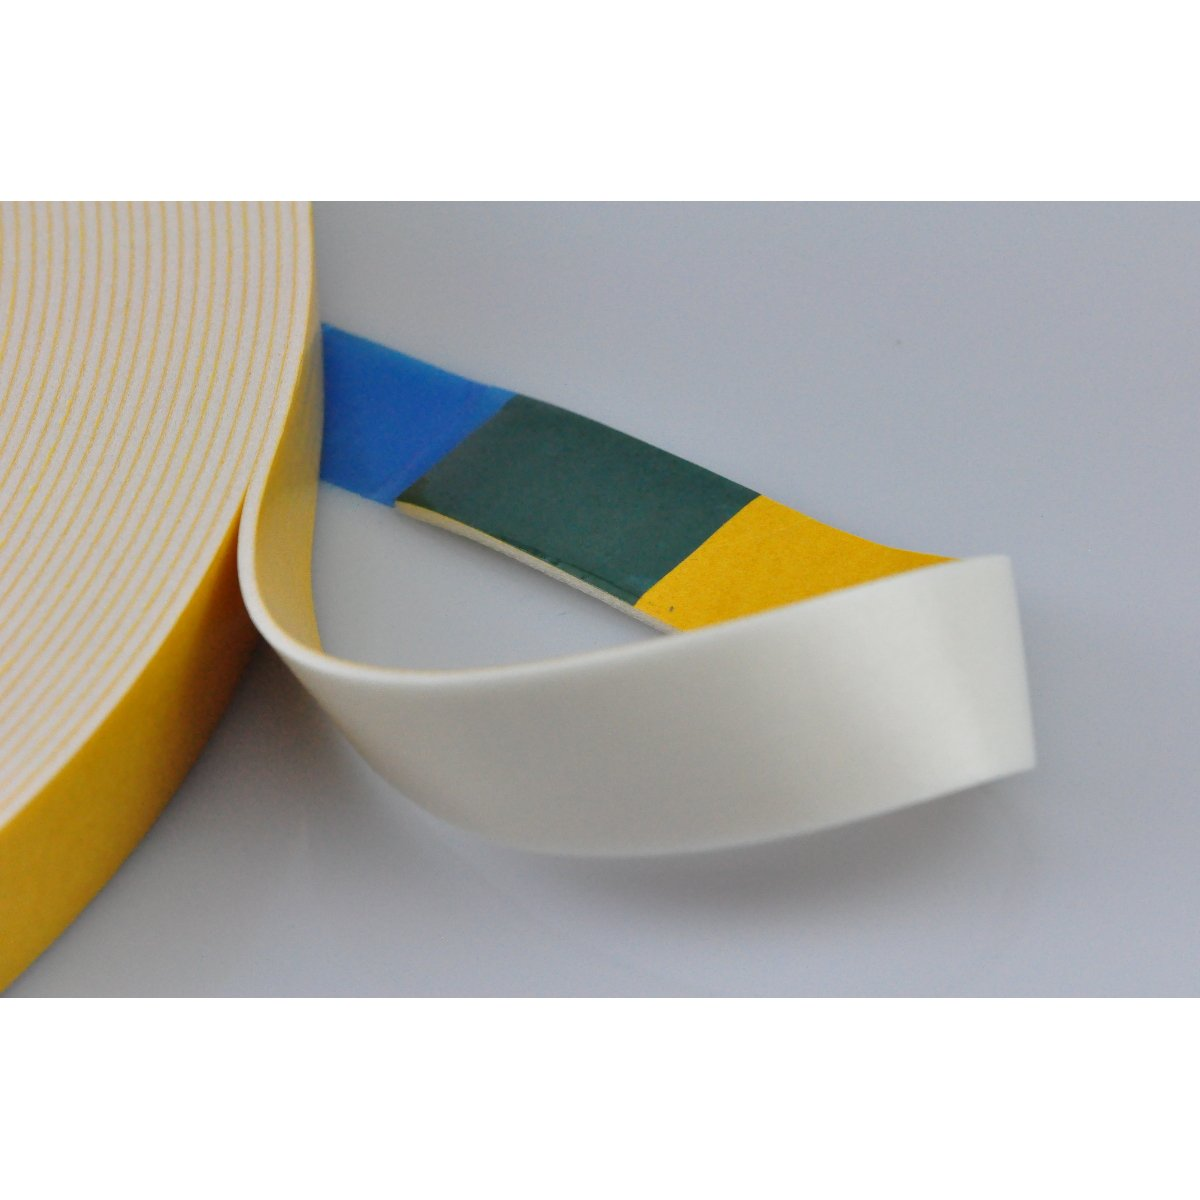 12mm x 2mm x 40 Metre Double Sided Foam Tape